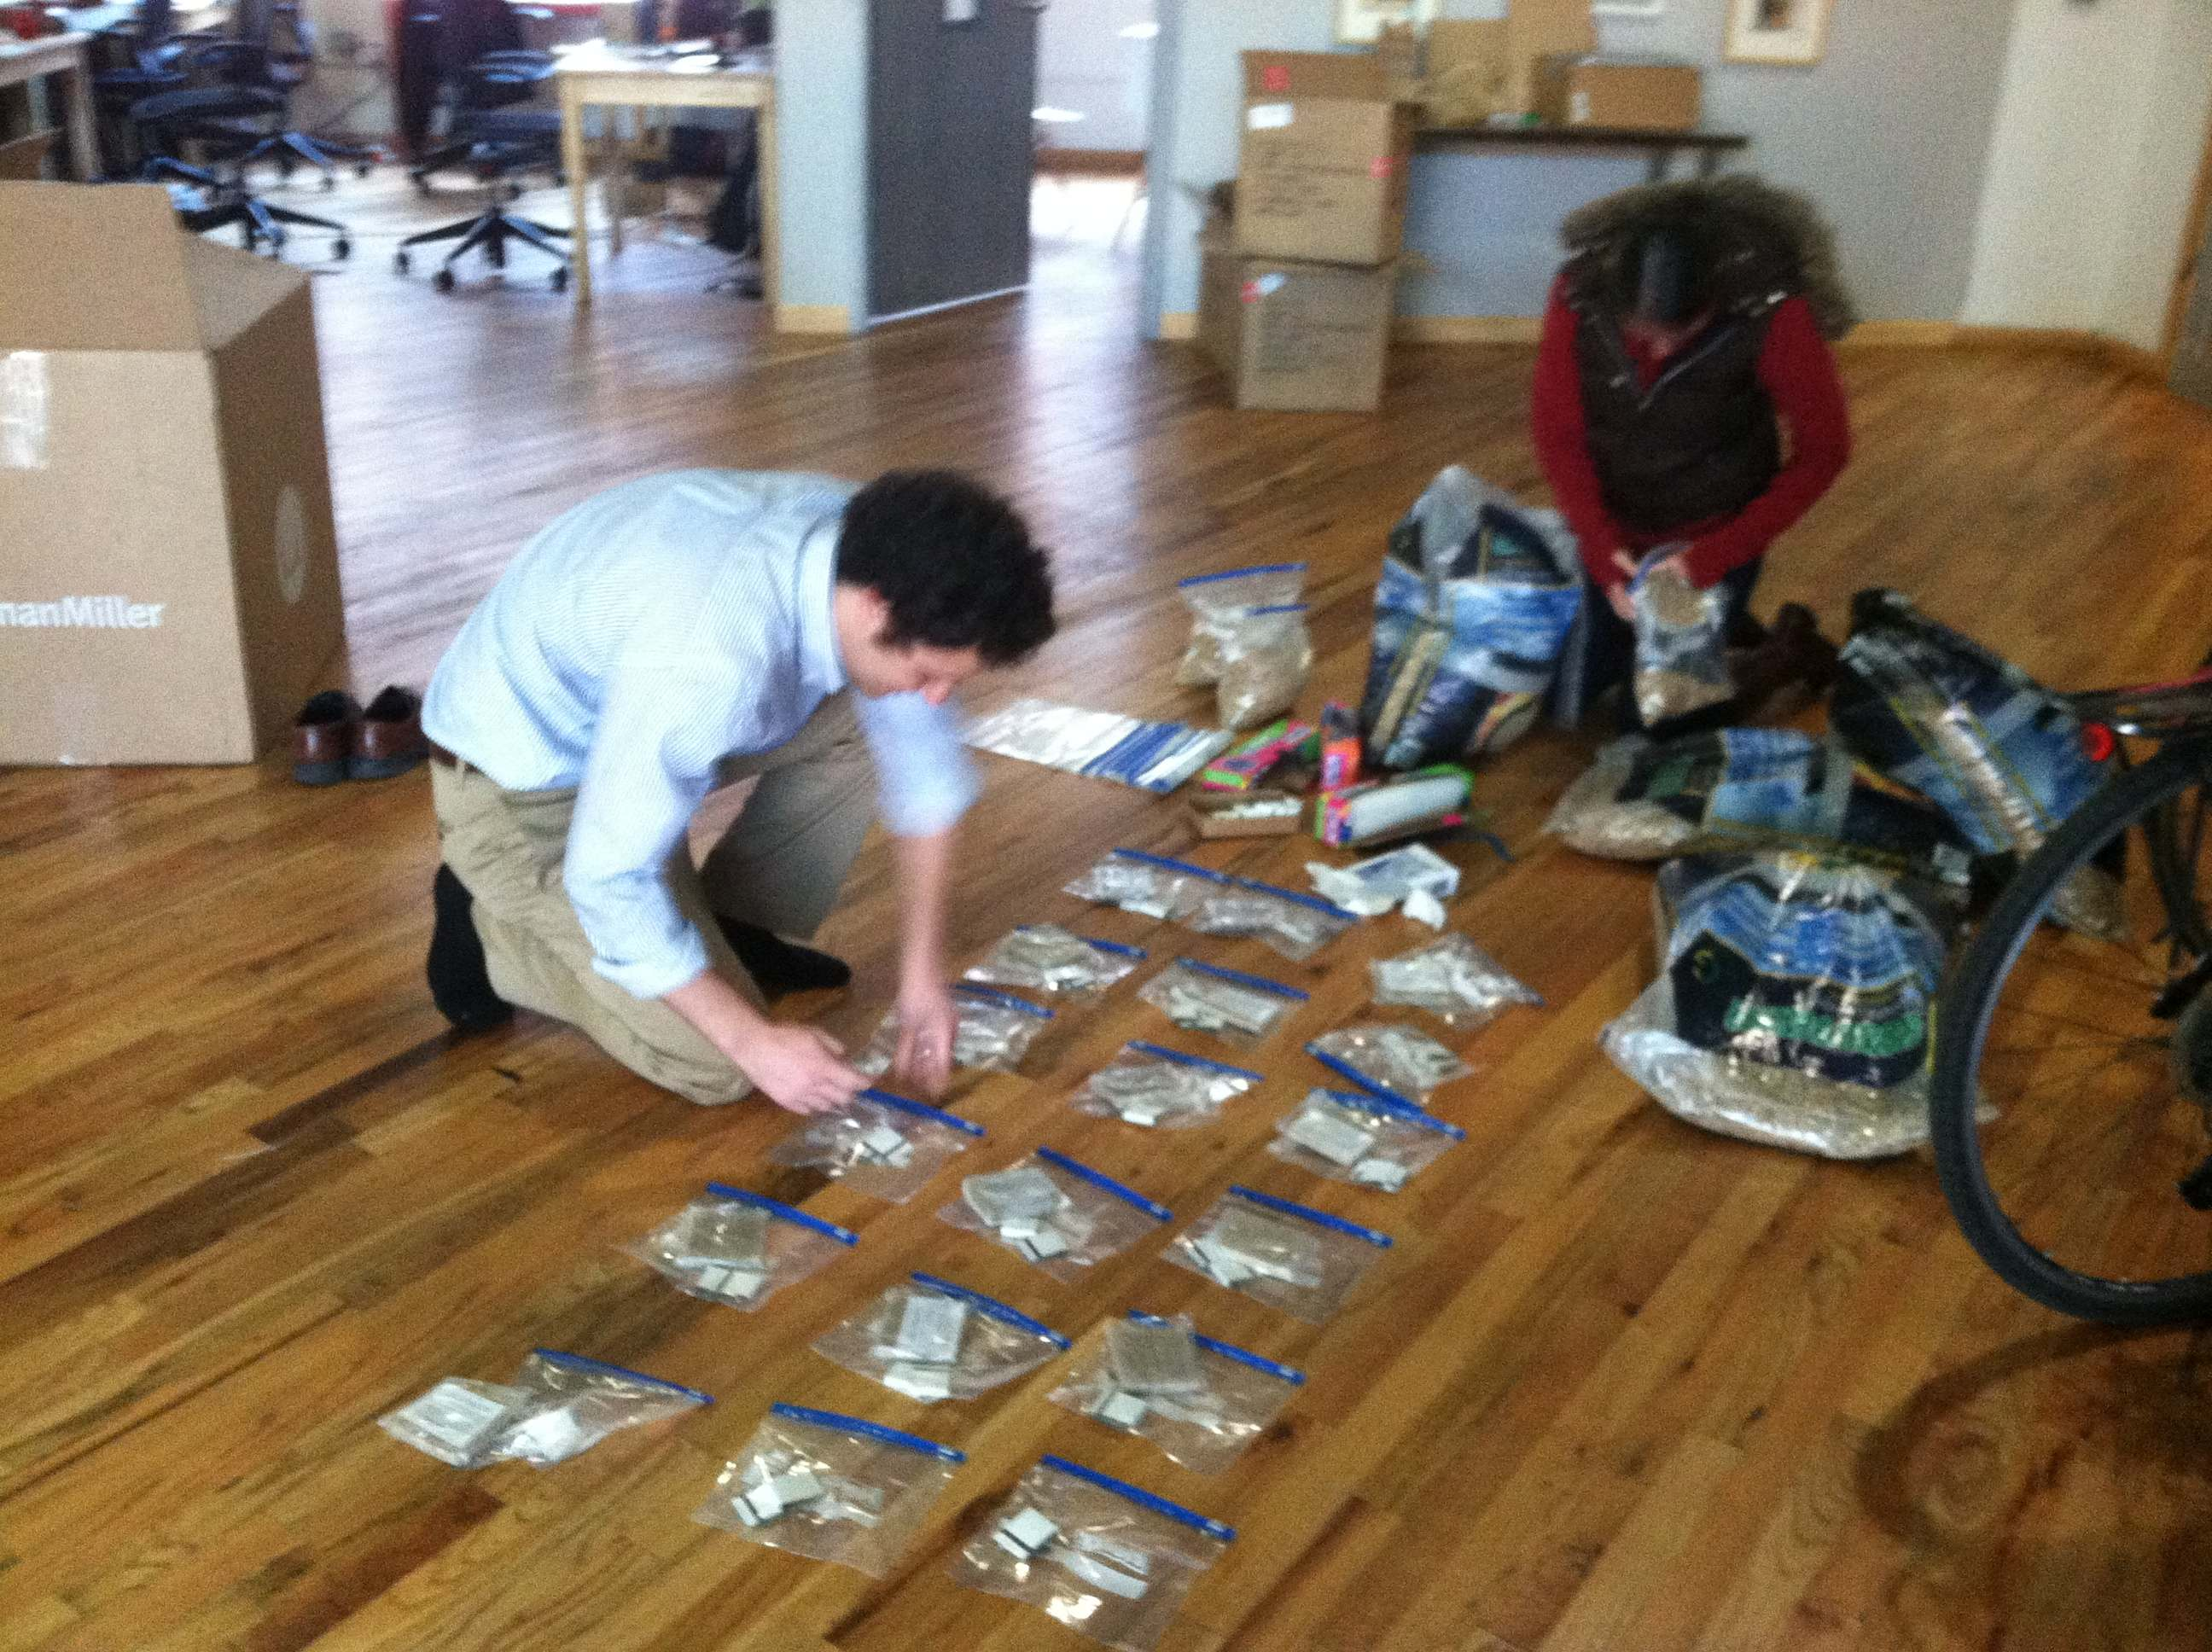 BioLite staff preparing emergency CampStove kits